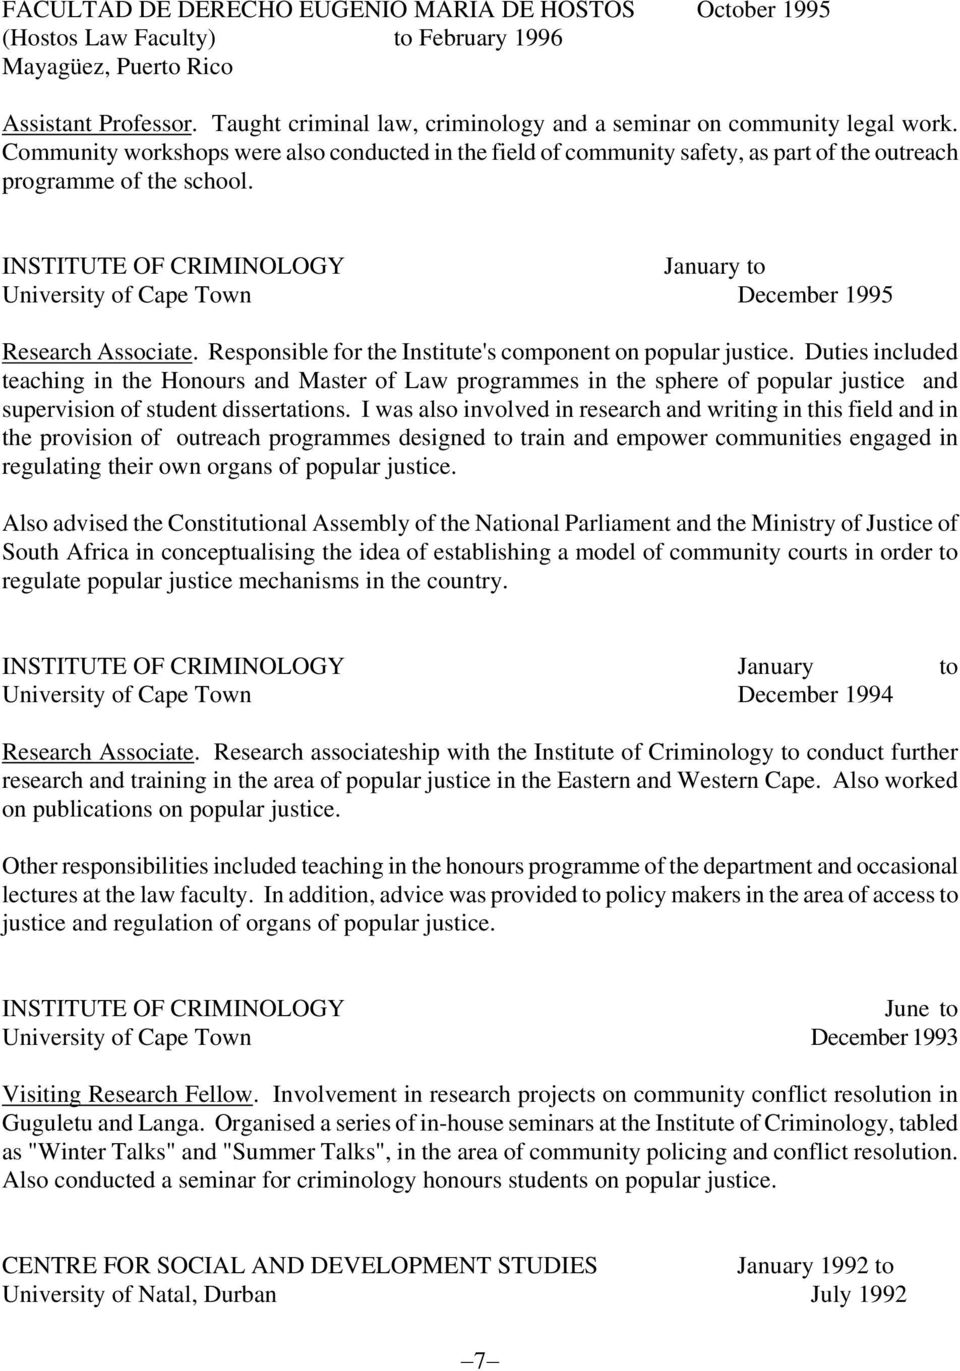 INSTITUTE OF CRIMINOLOGY January to University of Cape Town December 1995 Research Associate. Responsible for the Institute's component on popular justice.